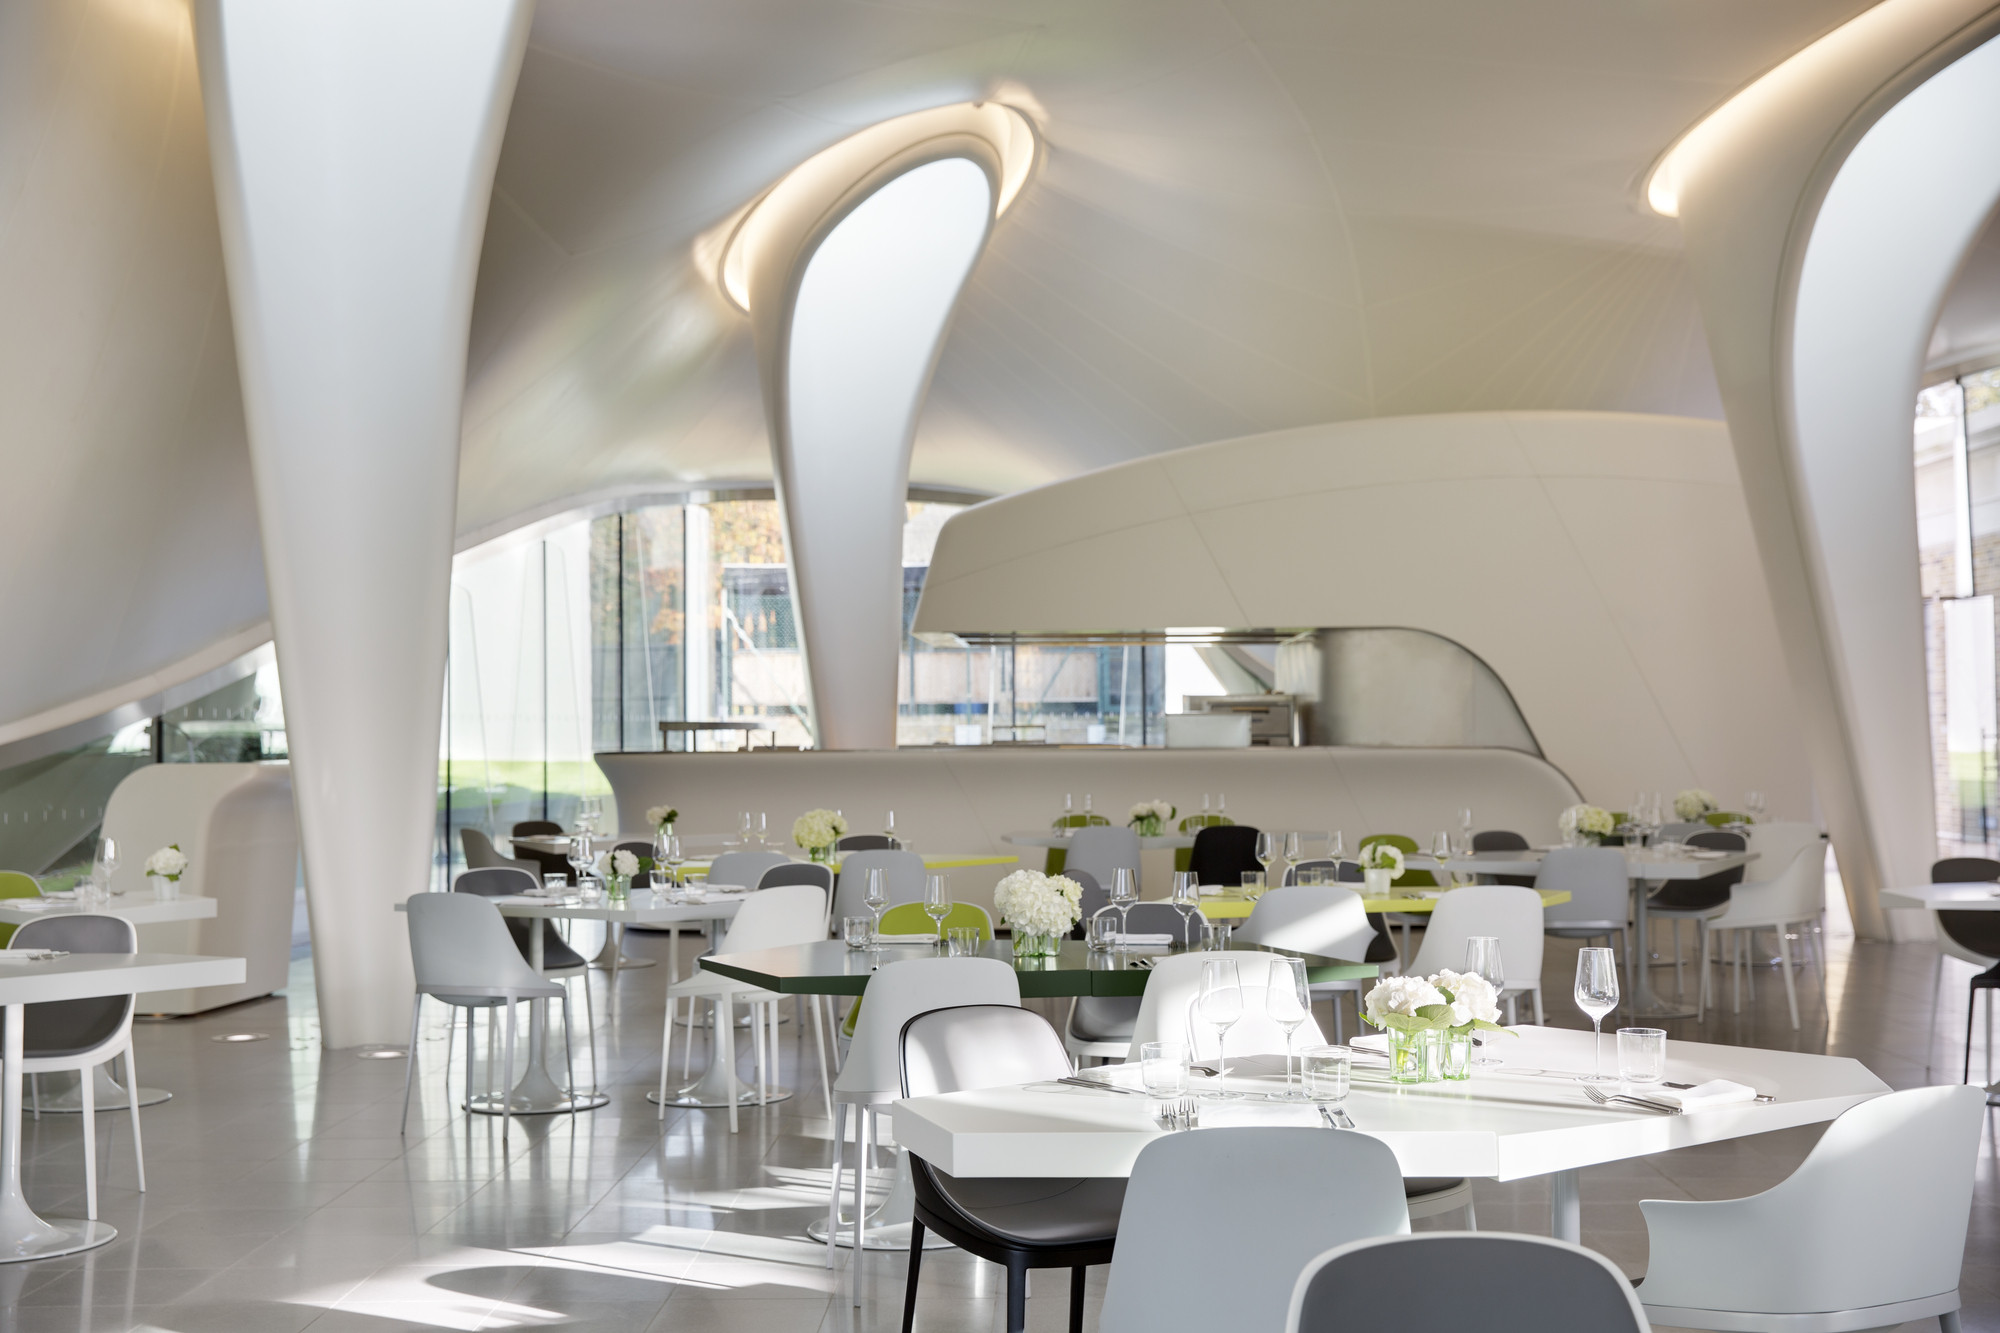 Longlist Revealed for Restaurant & Bar Design Awards 2015, Restaurant/Bar in Another Space: The Magazine (London). Image © Zaha Hadid Architects